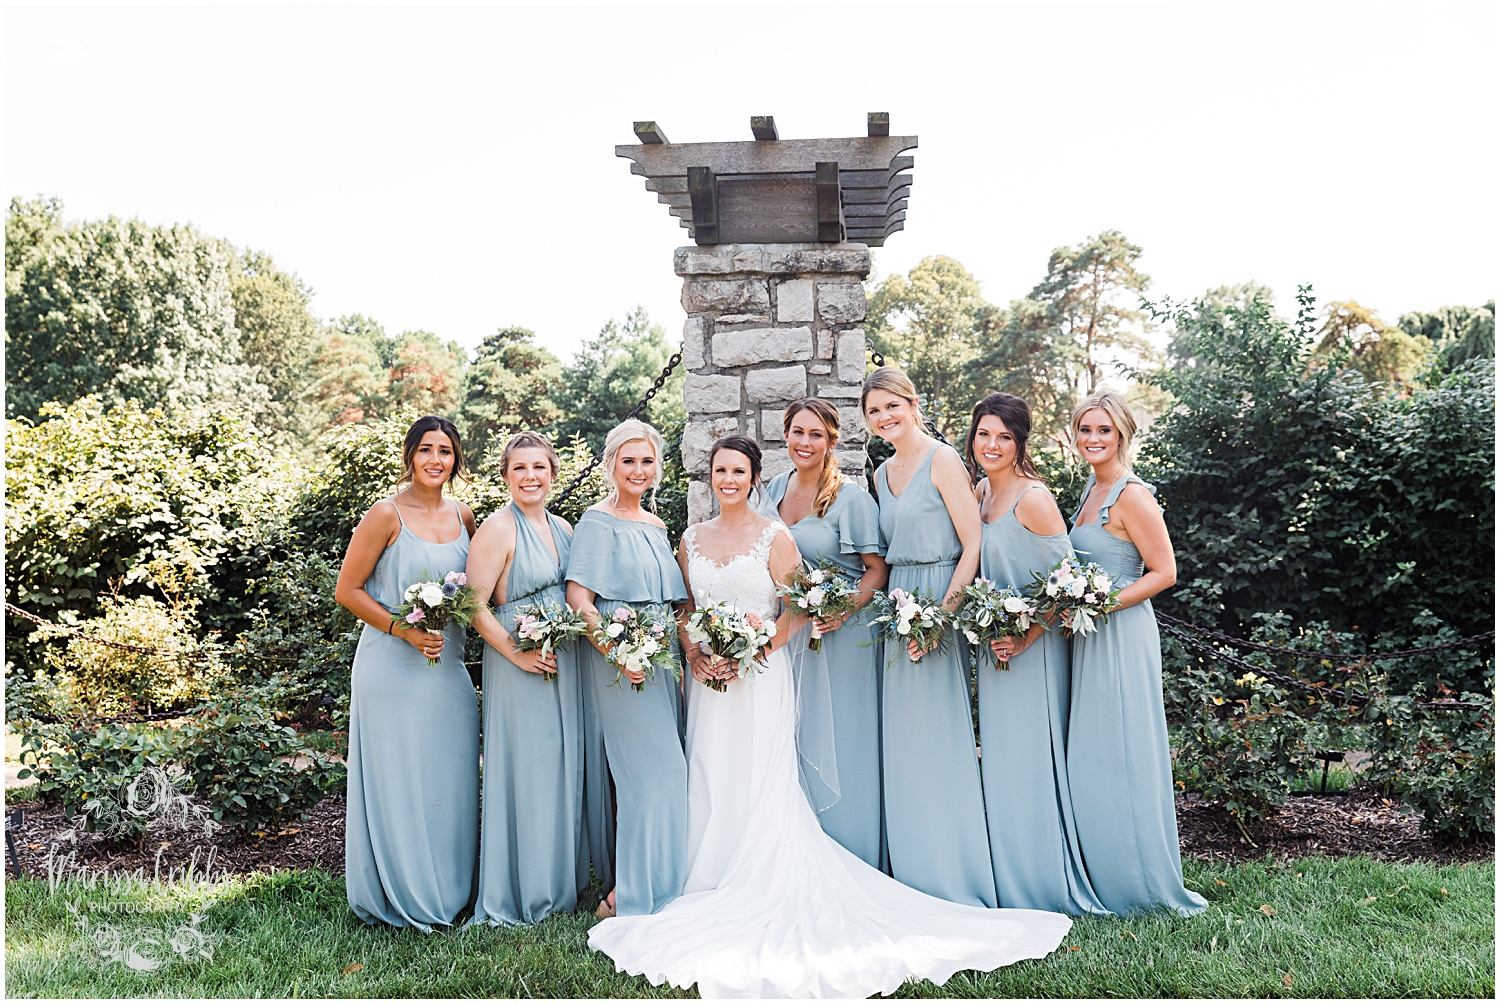 KELLY & MITCH MARRIED BLOG | MARISSA CRIBBS PHOTOGRAPHY | THE EVERLY EVENT SPACE_8849.jpg